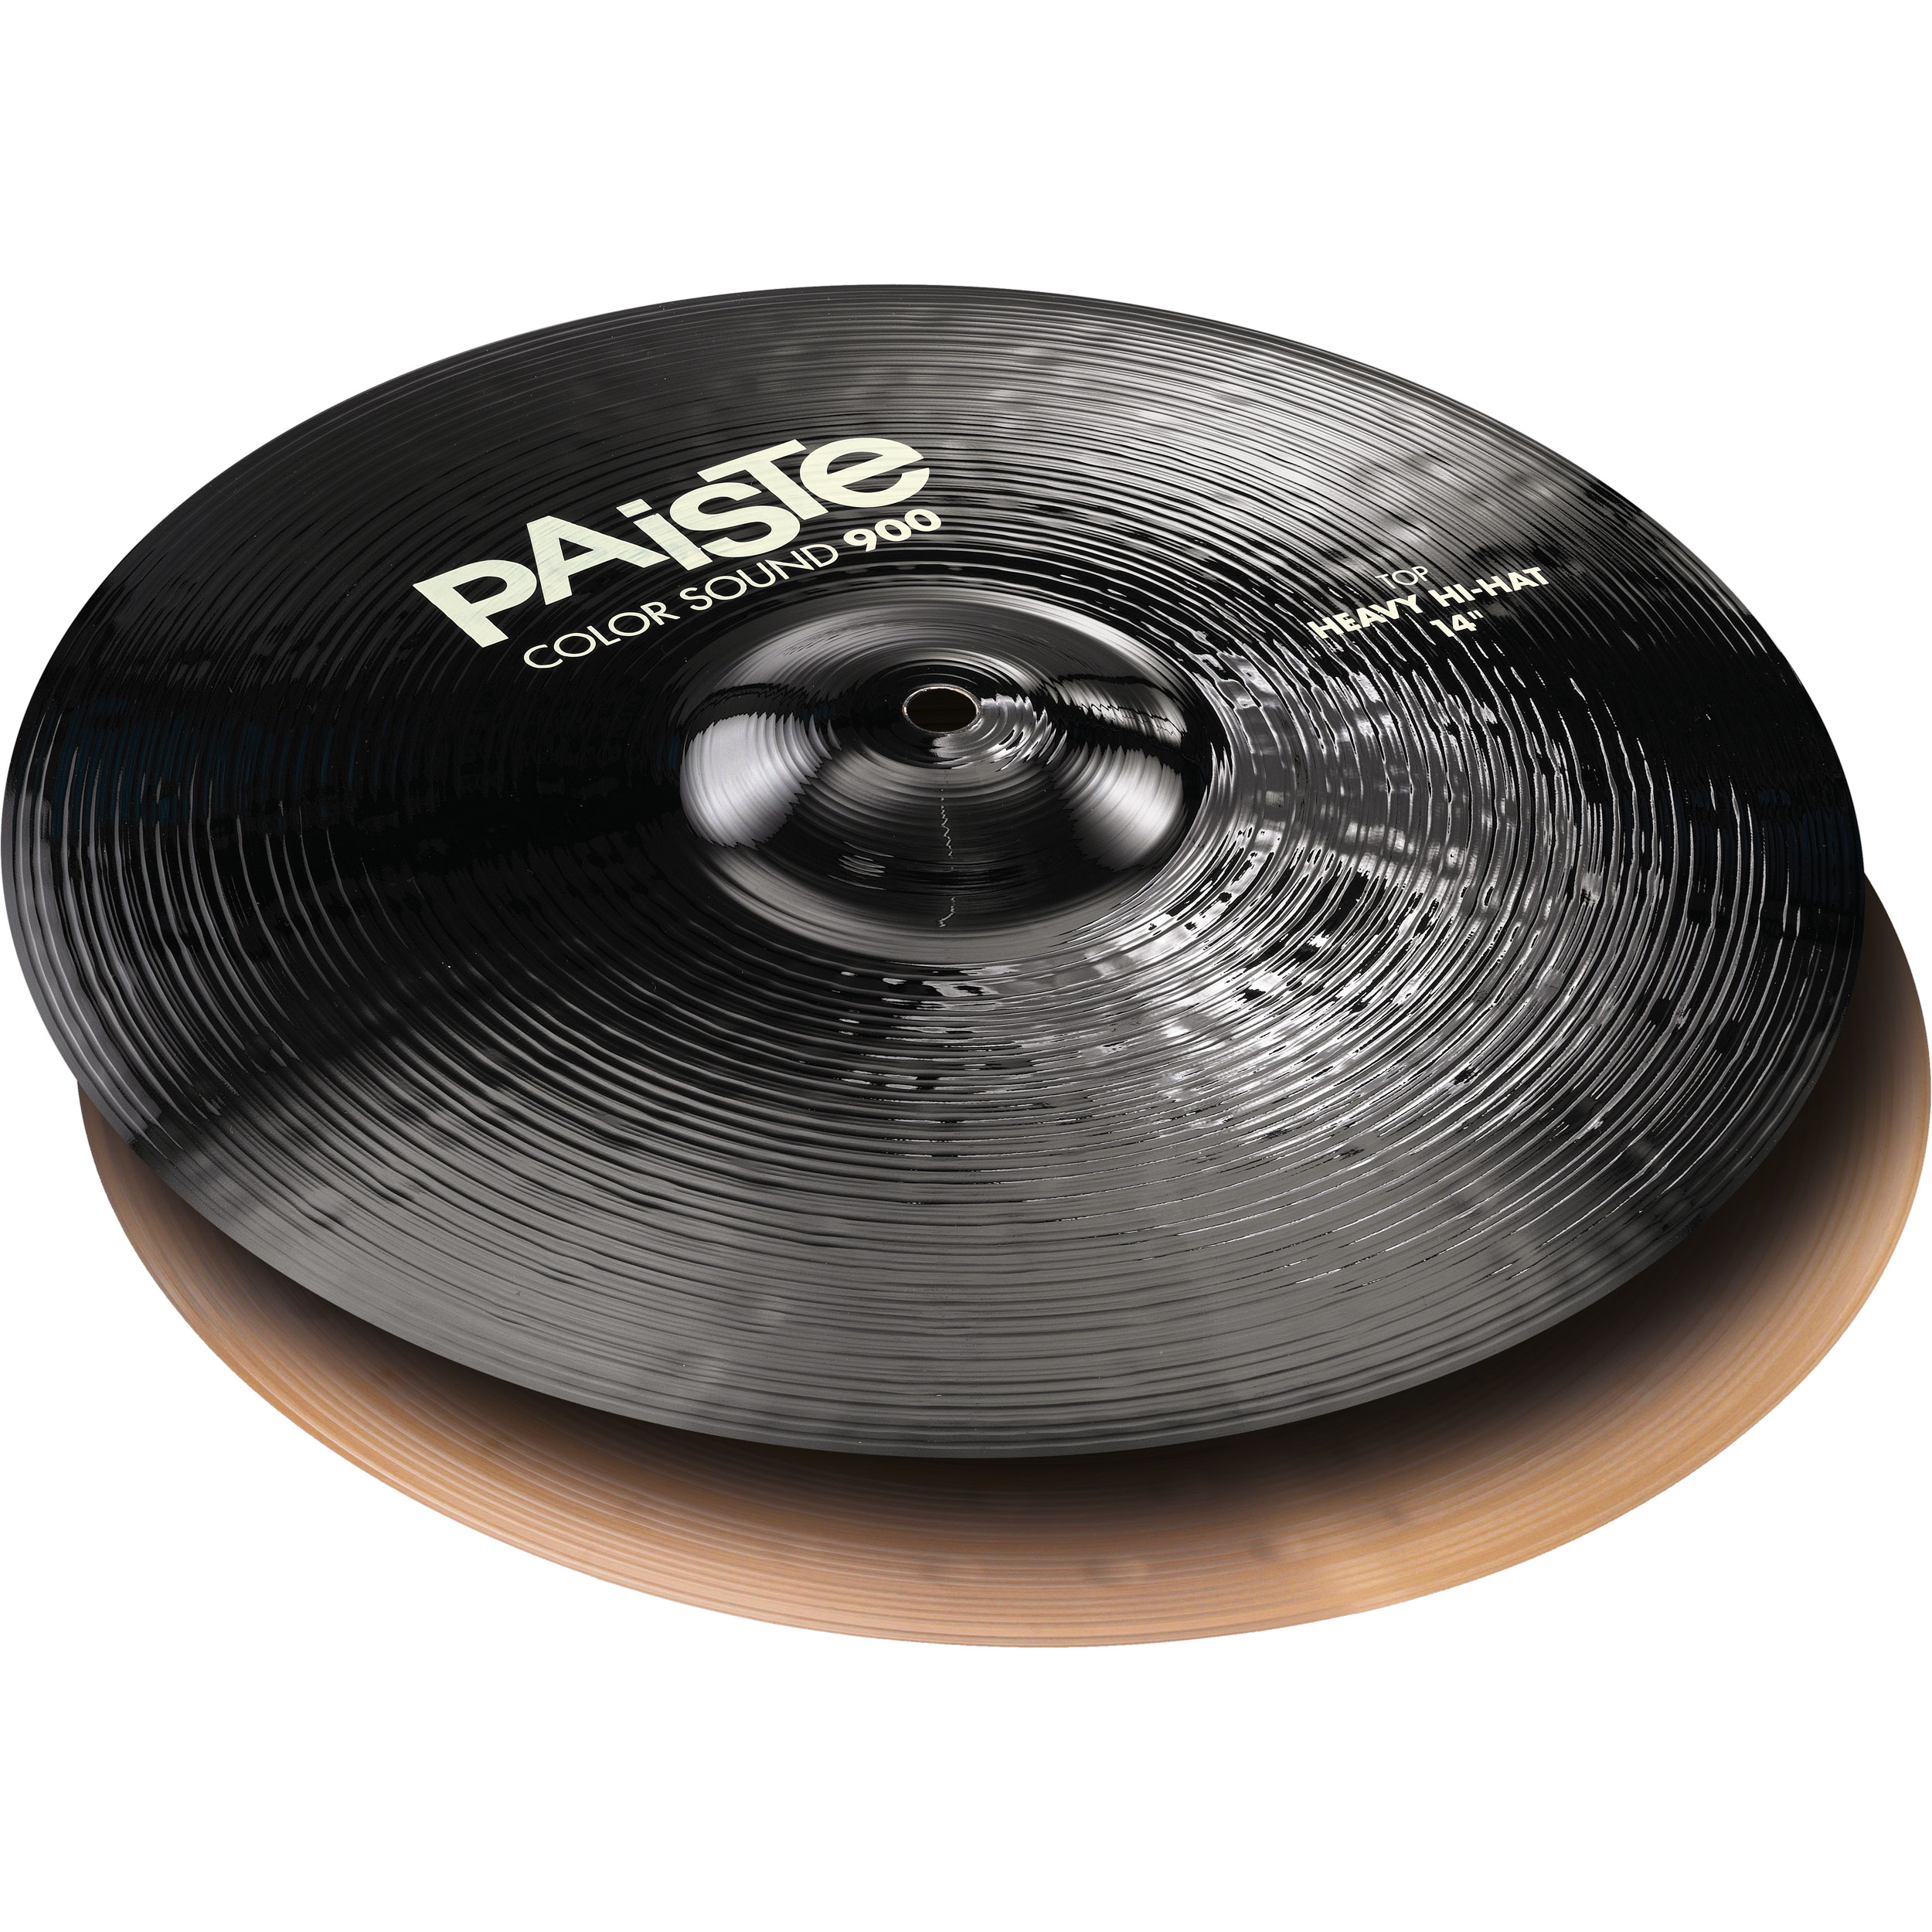 "Paiste 14"" Color Sound 900 Black Heavy Hi Hat Cymbals"